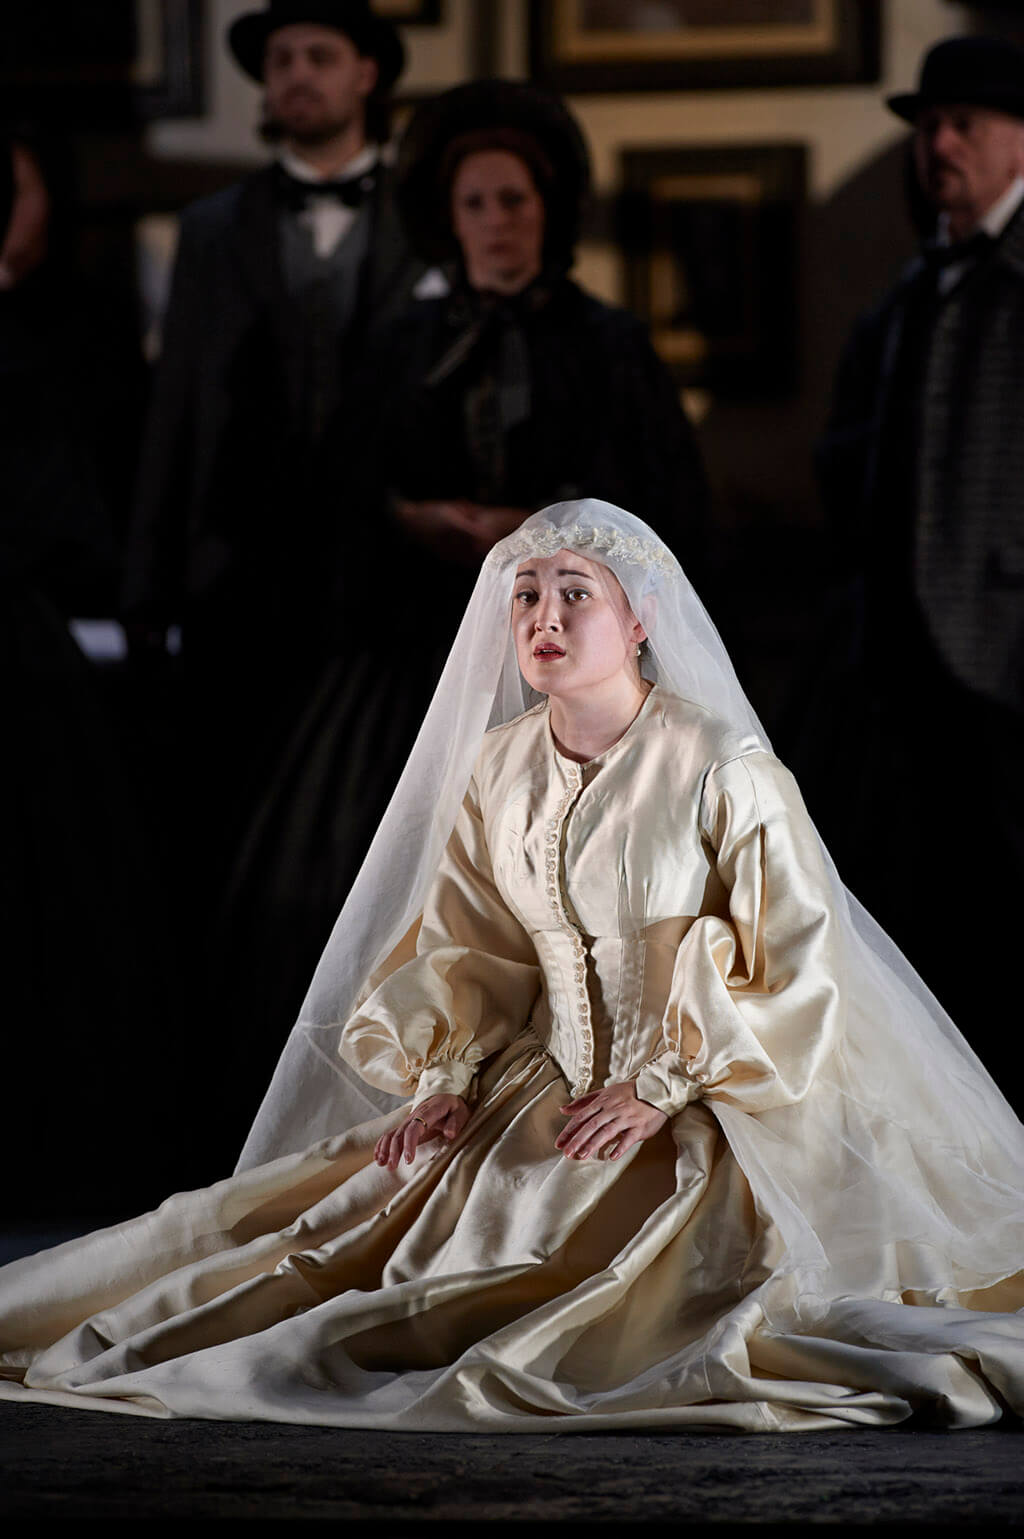 Anna Christy as Lucia in the Canadian Opera Company's production of Lucia di Lammermoor, 2013. Conductor Stephen Lord, director David Alden, associate director Ian Rutherford, set designer Charles Edwards, costume designer Brigitte Reiffenstuel, original lighting designer Adam Silverman and lighting design re-creator Andrew Cutbush. (Photo: Michael Cooper)